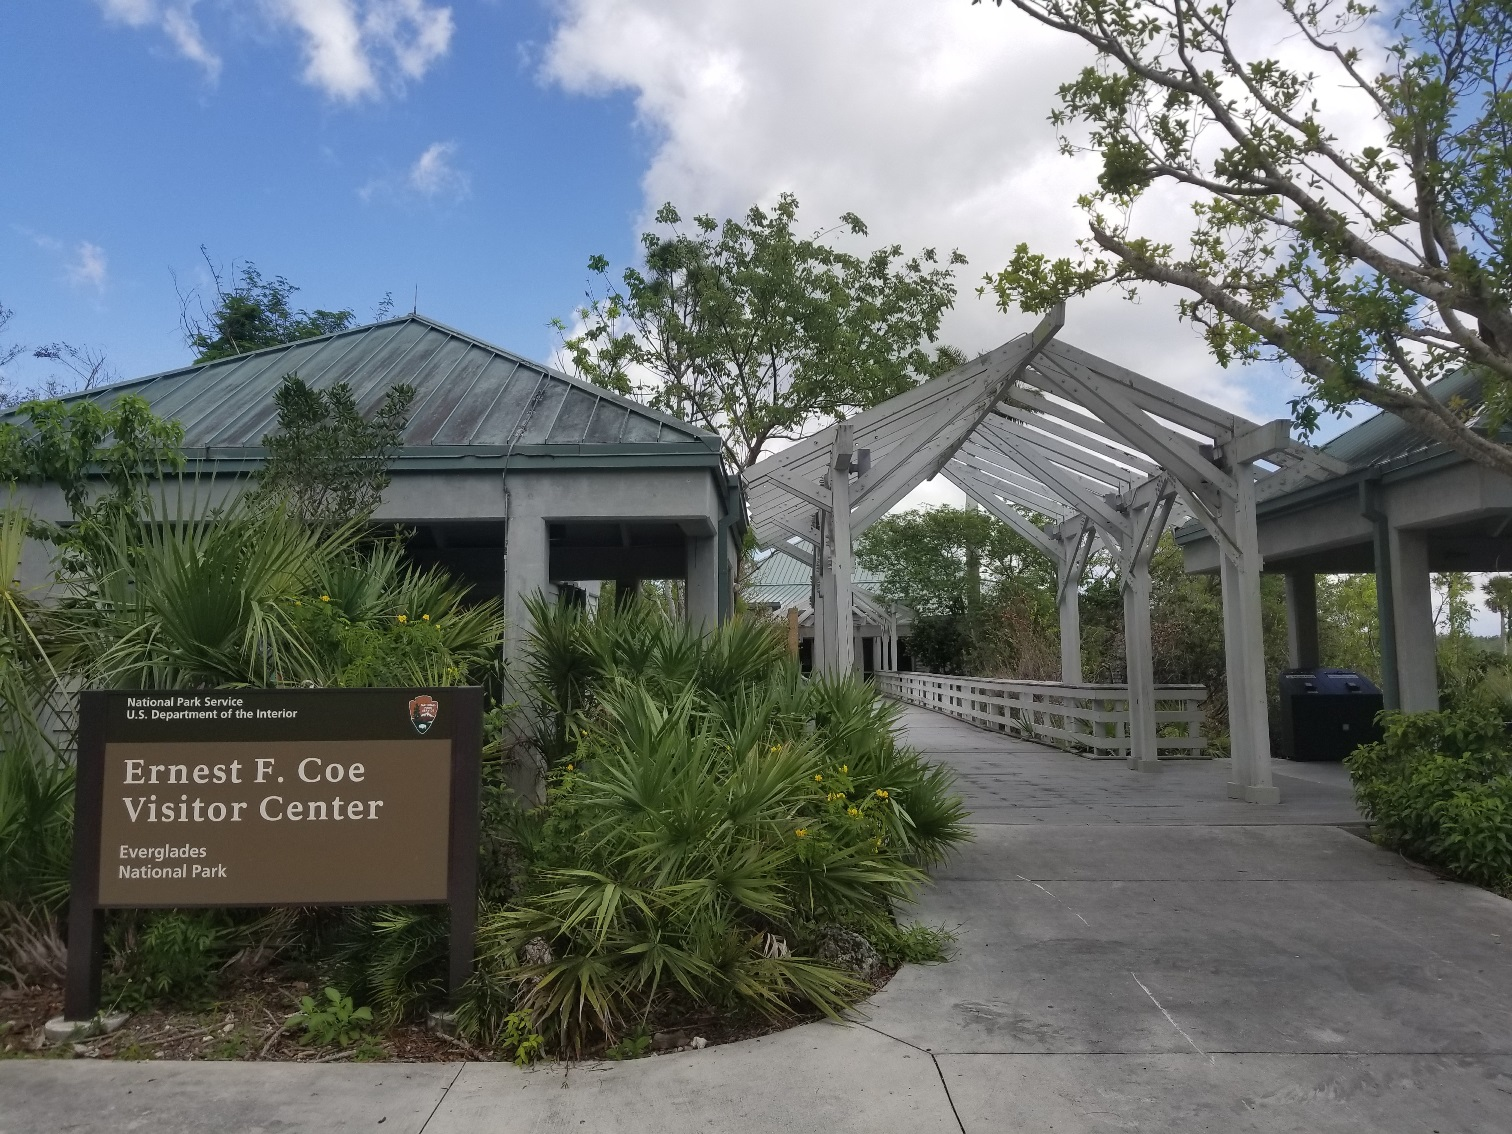 entrance to the Ernest F. Coe Visitor Center